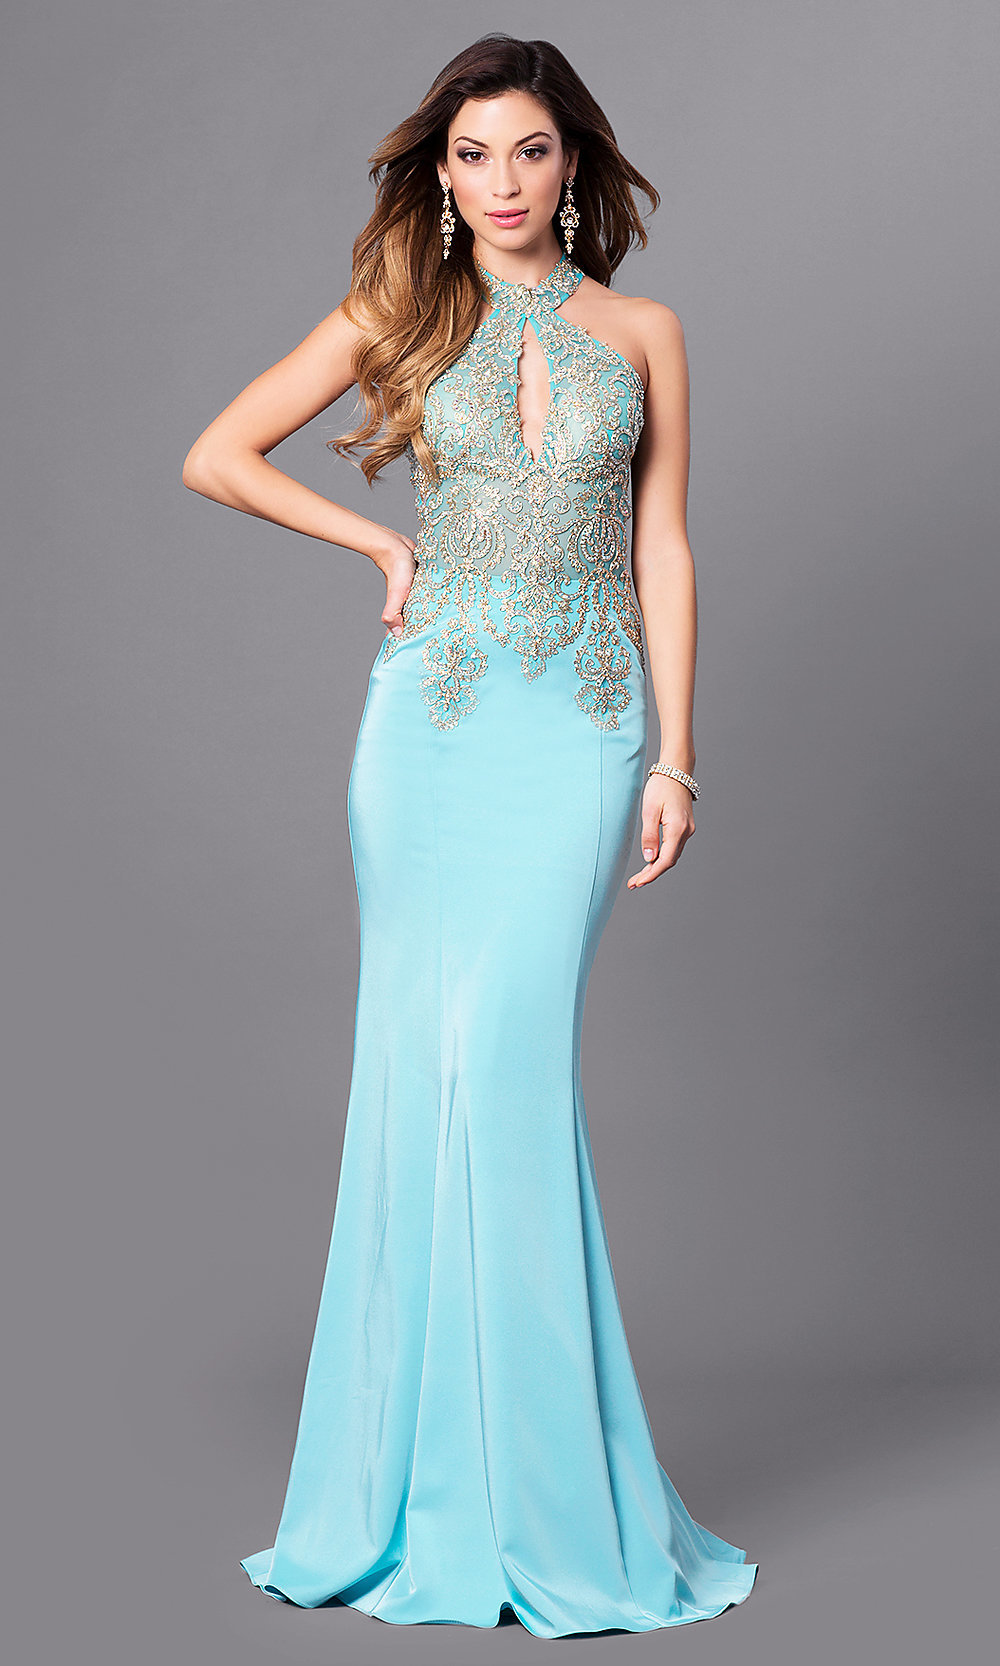 2e2901dde8 Long Lace High Halter Neck Evening Gown - PromGirl